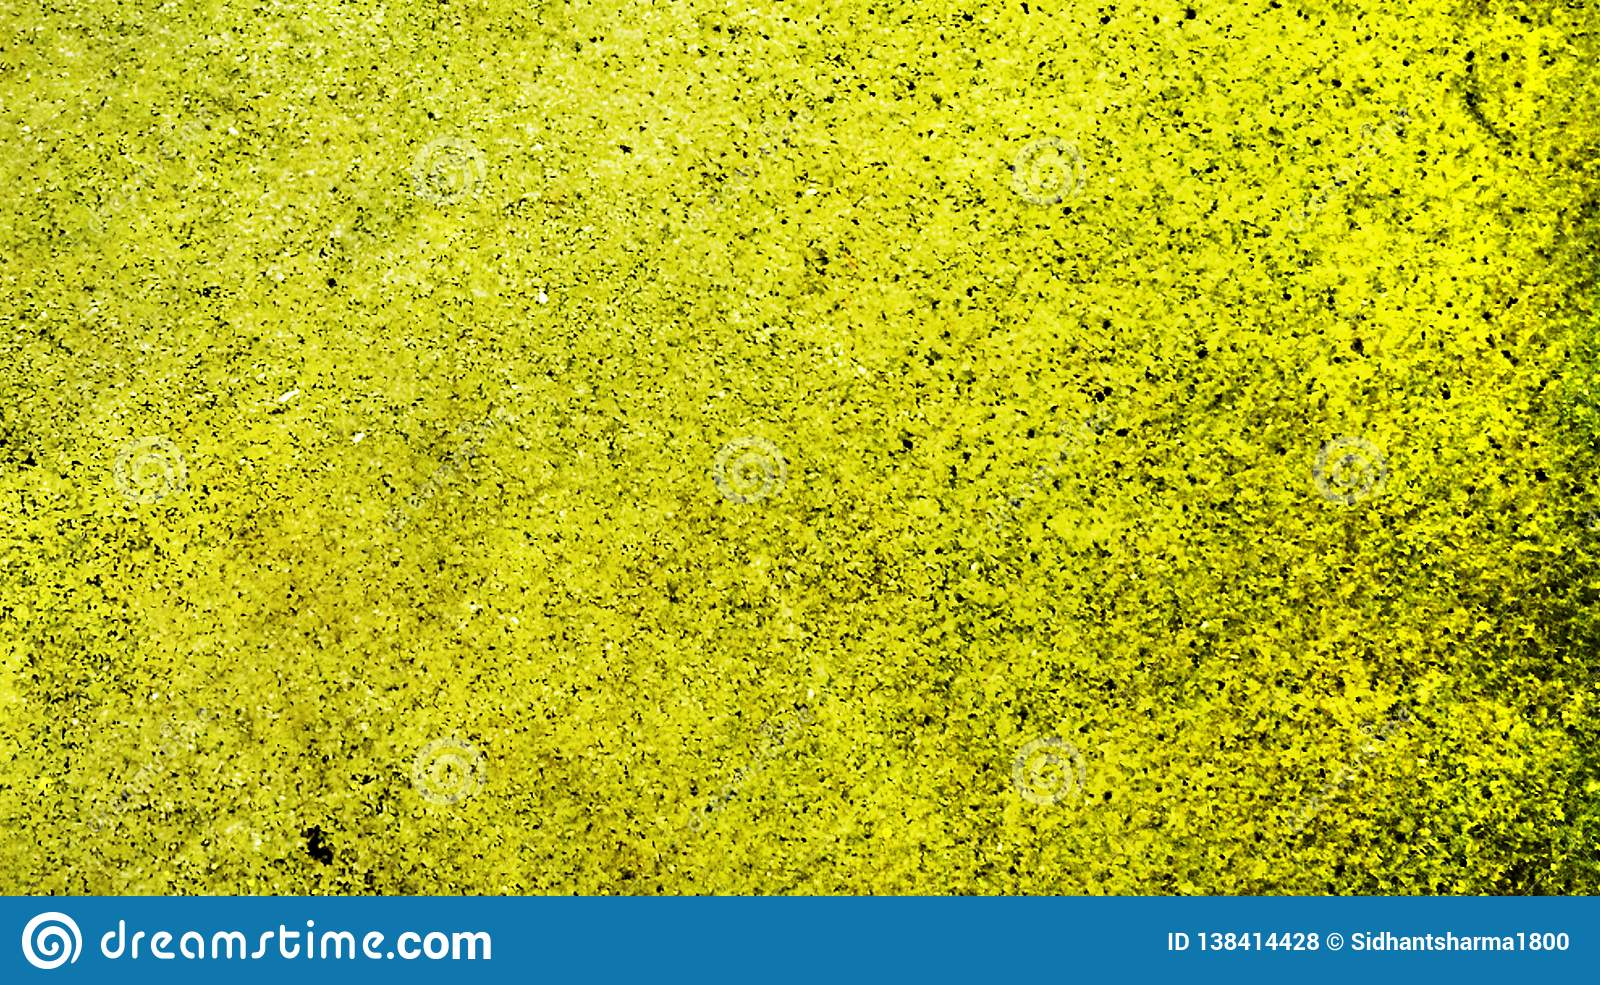 Yellow Color With Glitter Effects Textured Background